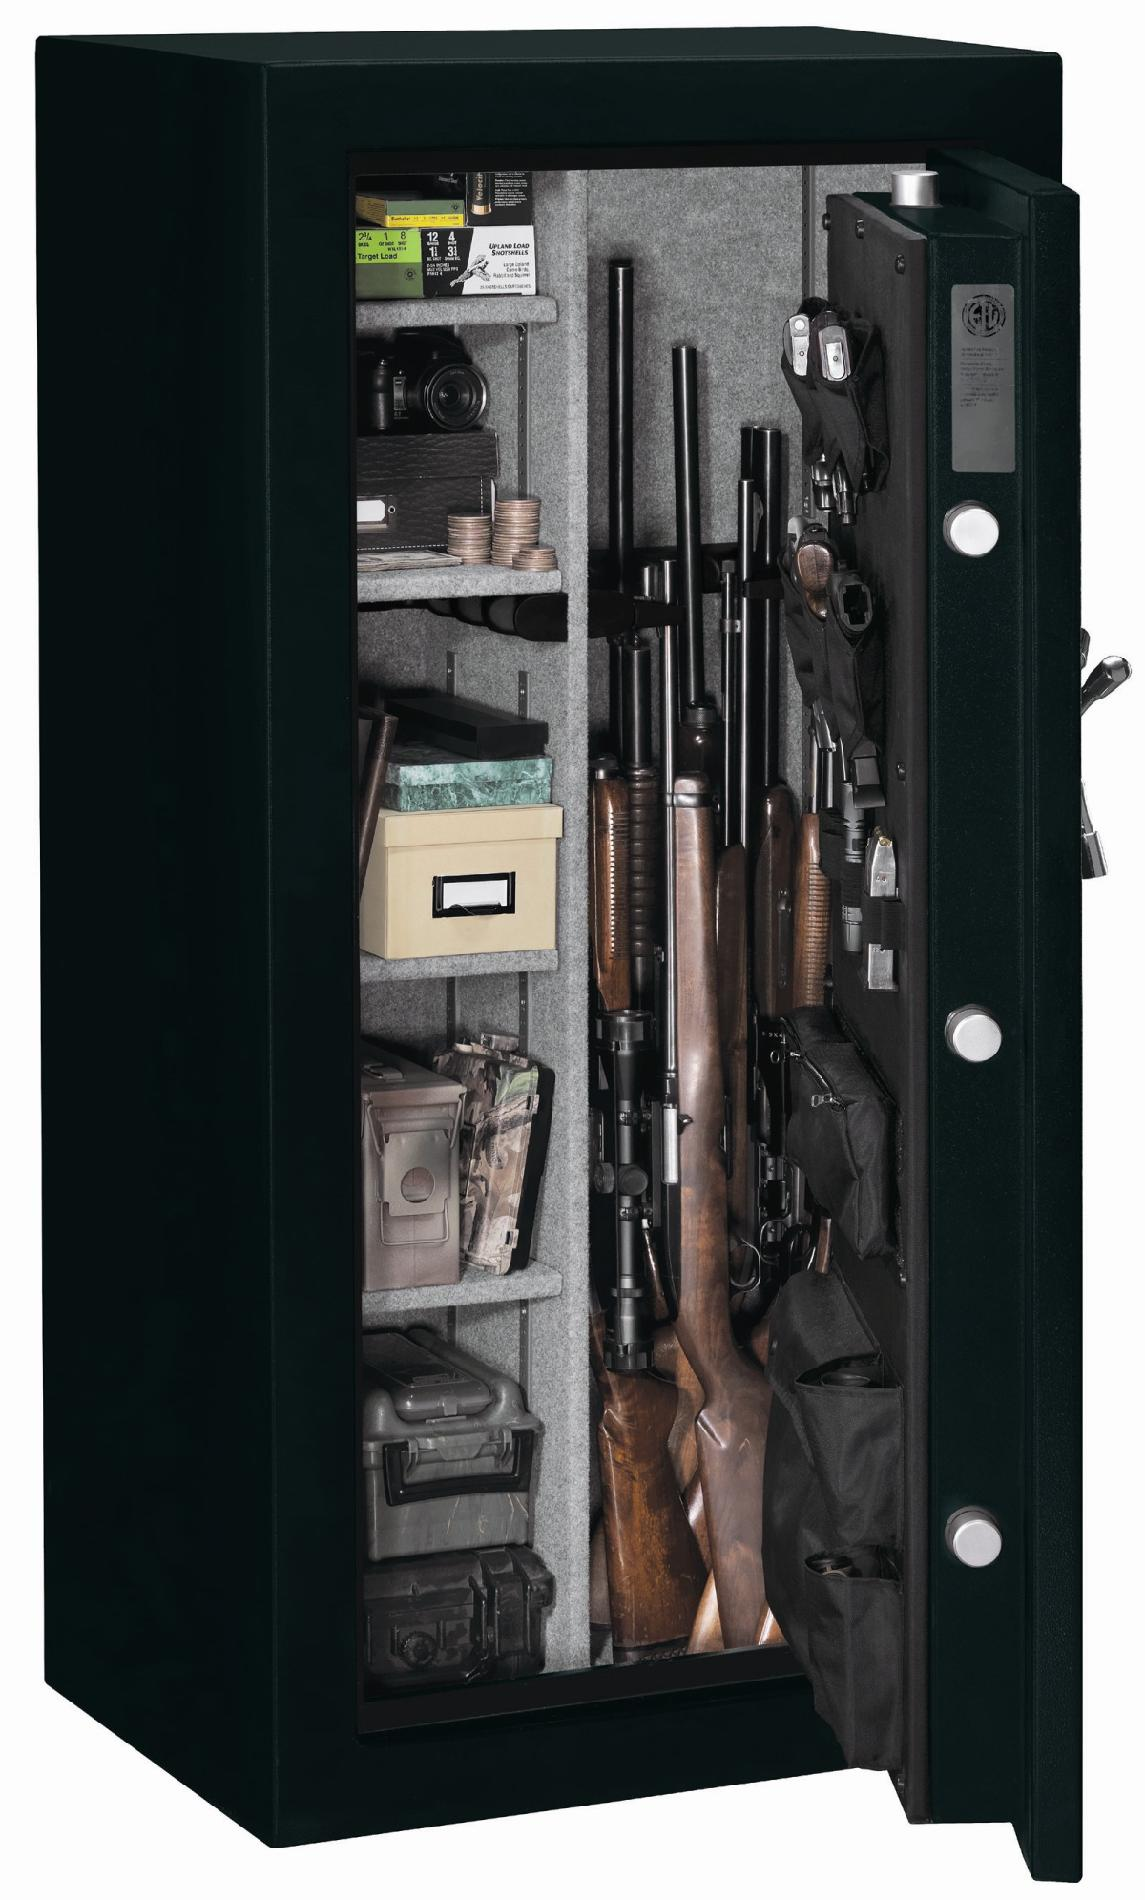 Stack-On Elite 24-Gun Fire Rated Safe with Electronic Lock and Door Storage Organizer